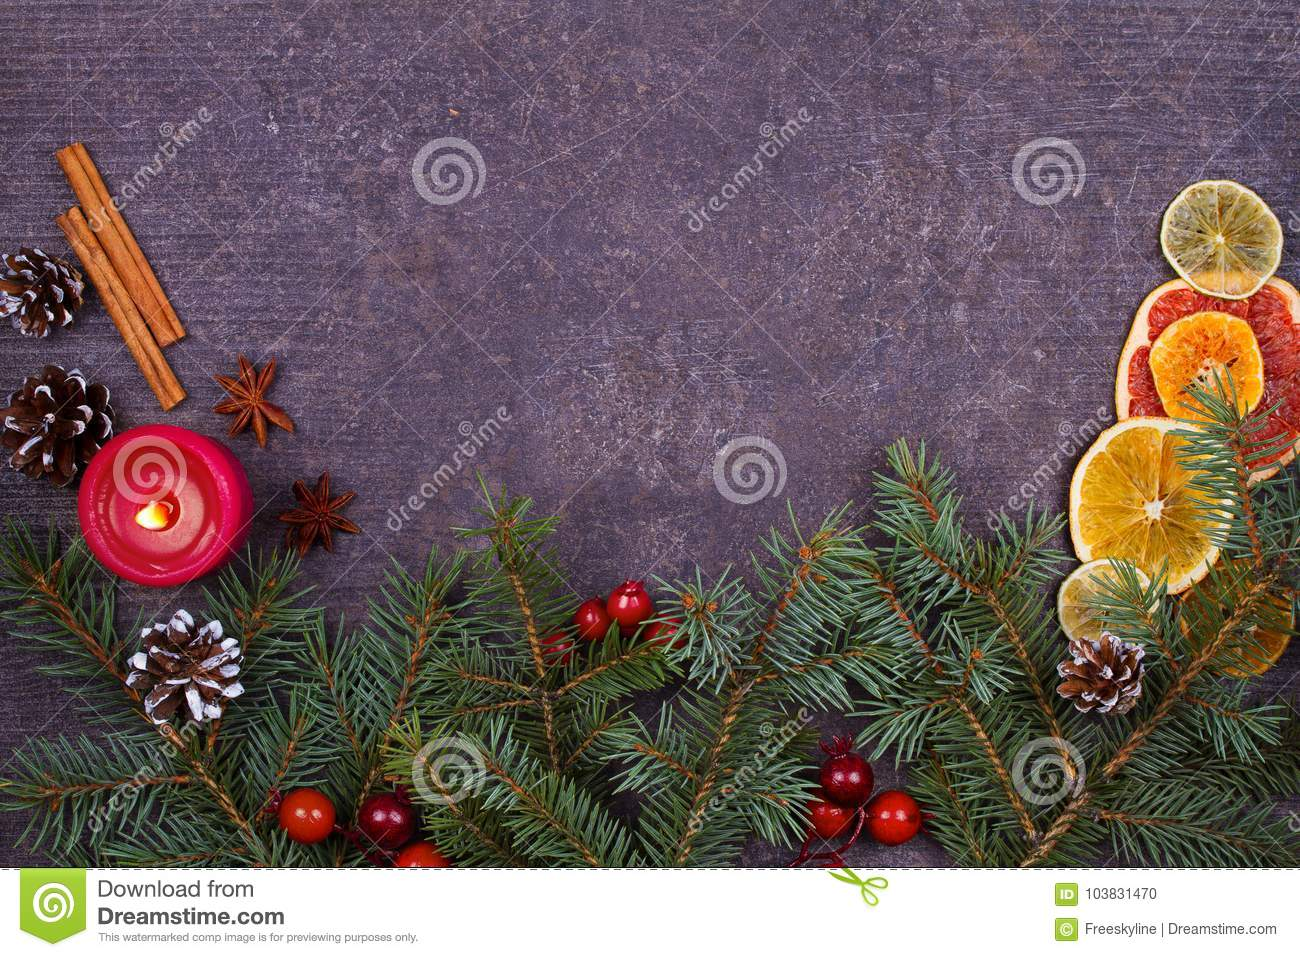 christmas and new year border or frame on grunge wooden background winter holidays concept